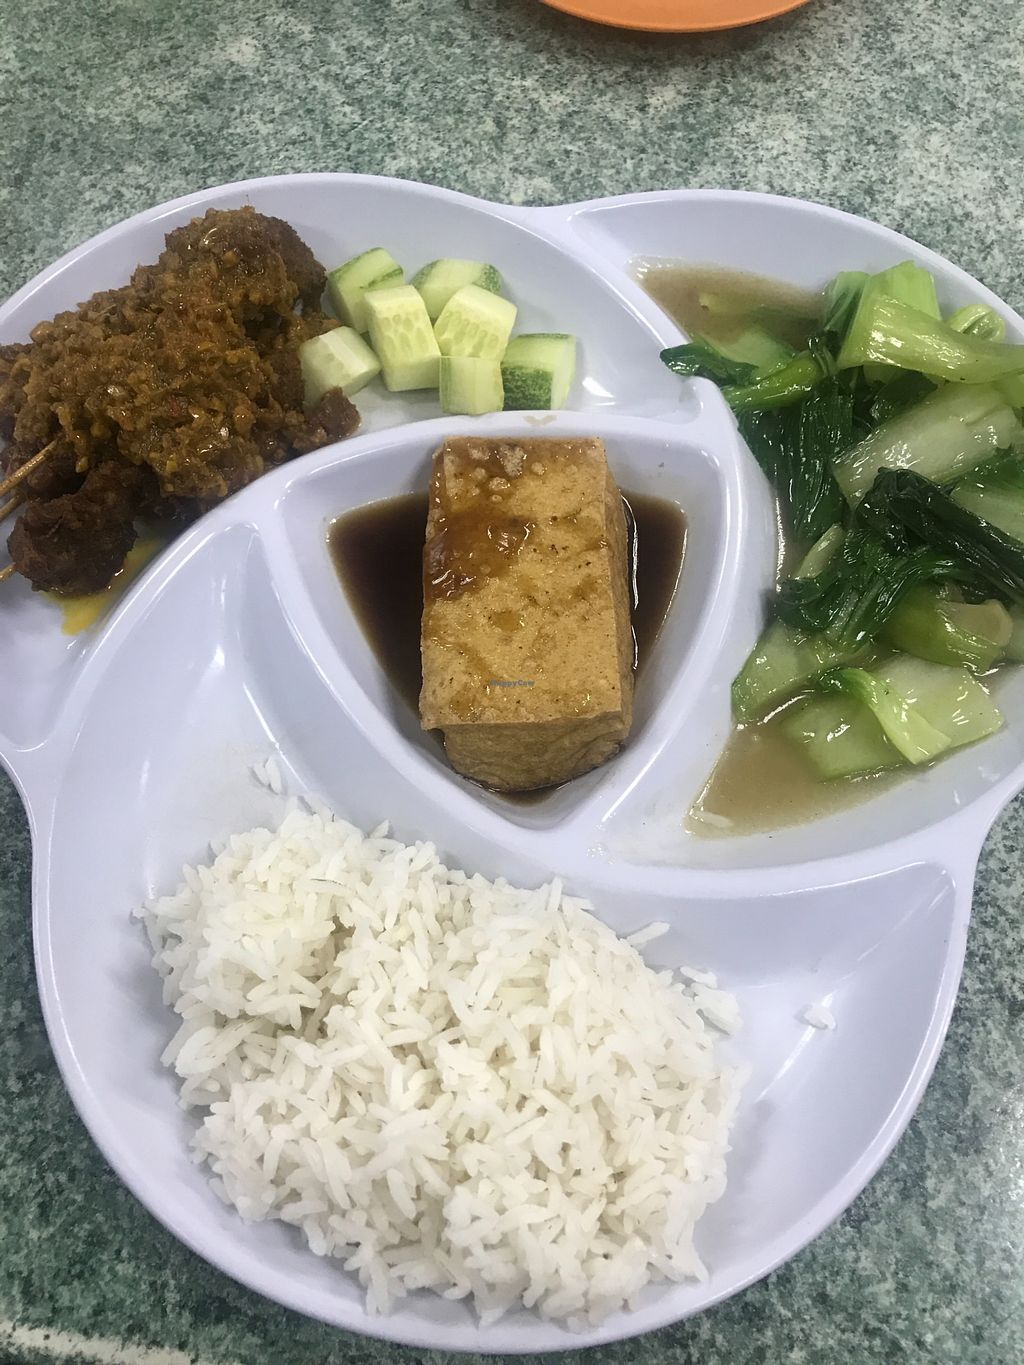 """Photo of Water Lily Restaurant  by <a href=""""/members/profile/theNumberOfTheBeast"""">theNumberOfTheBeast</a> <br/>Dinner Combo #3 <br/> January 12, 2018  - <a href='/contact/abuse/image/7264/345704'>Report</a>"""